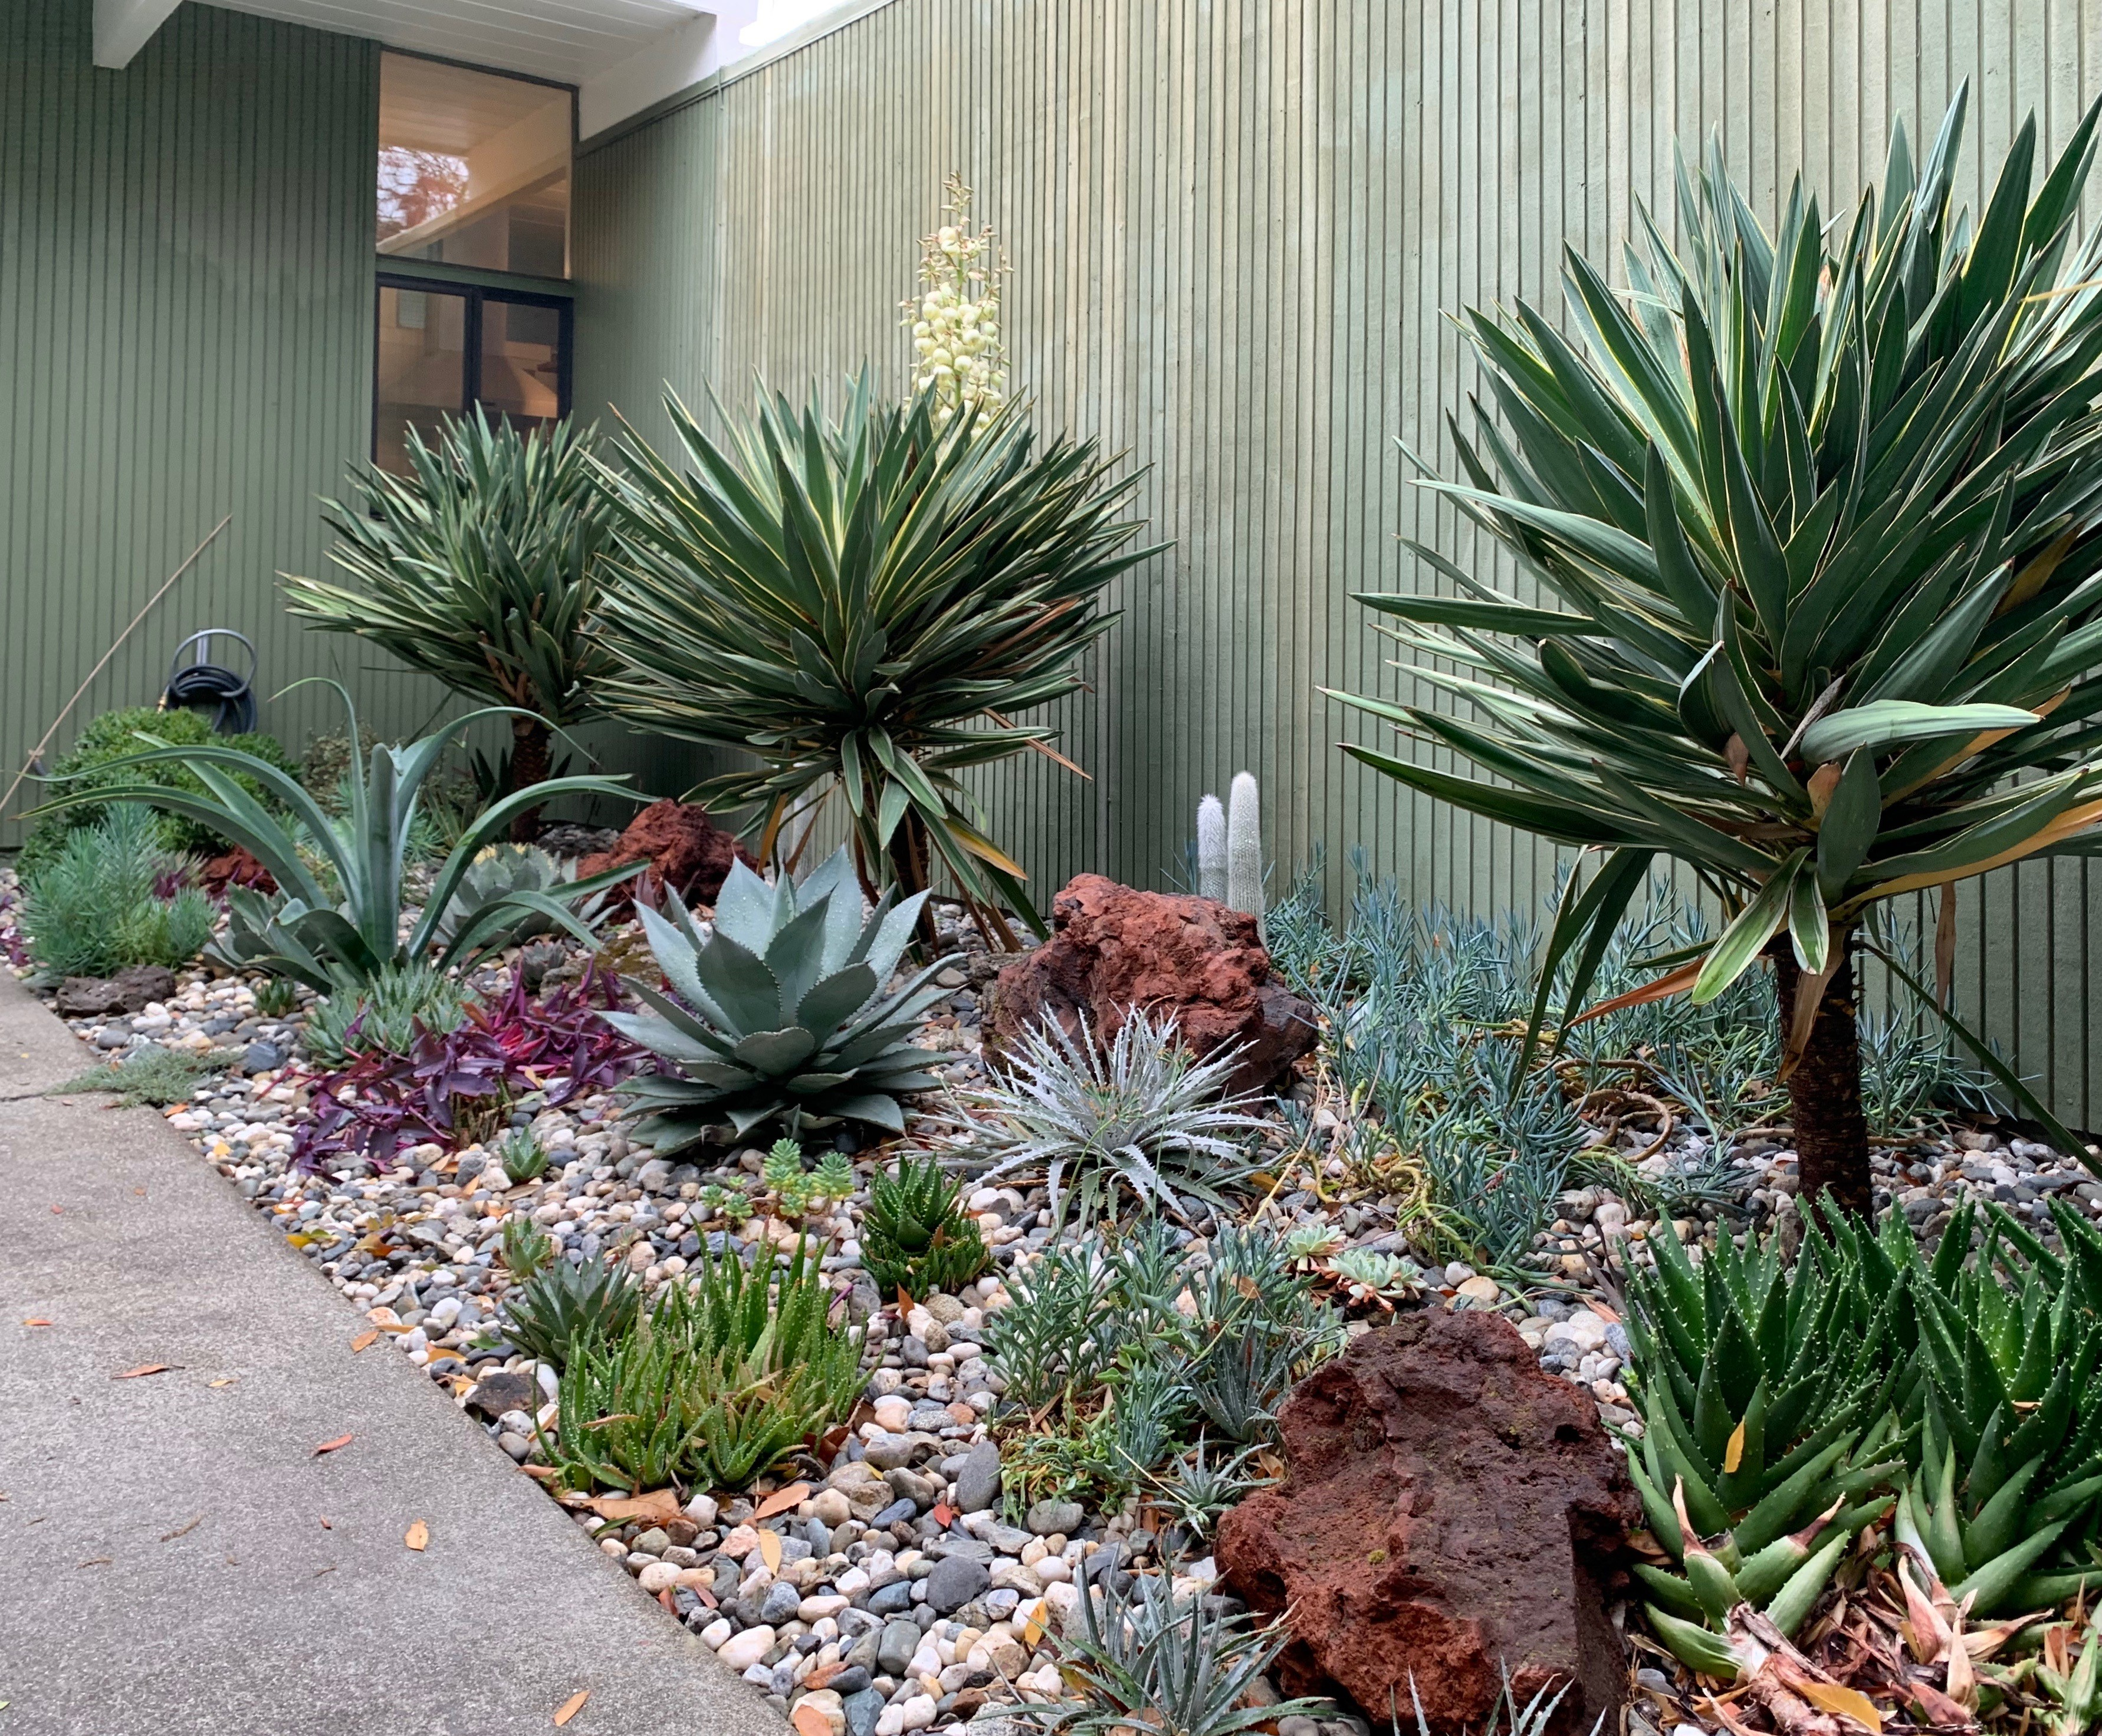 Basic Design Principles Small Spaces The Ruth Bancroft Garden